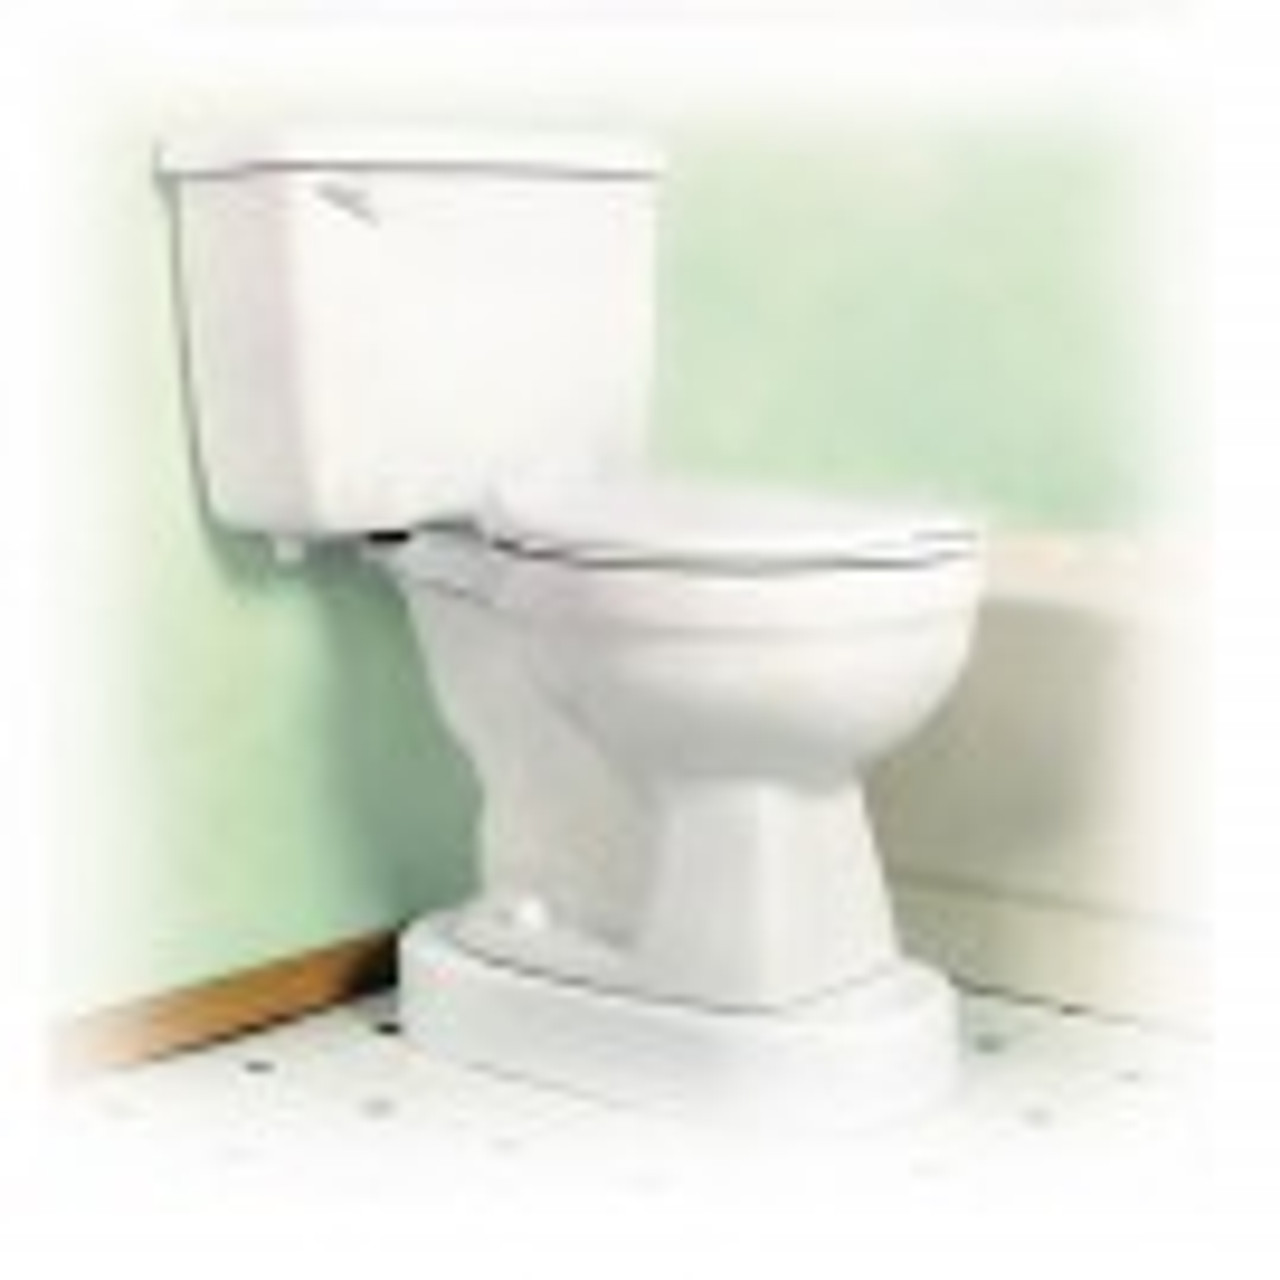 Swell Toilevator 1215 Toilet Riser Bralicious Painted Fabric Chair Ideas Braliciousco